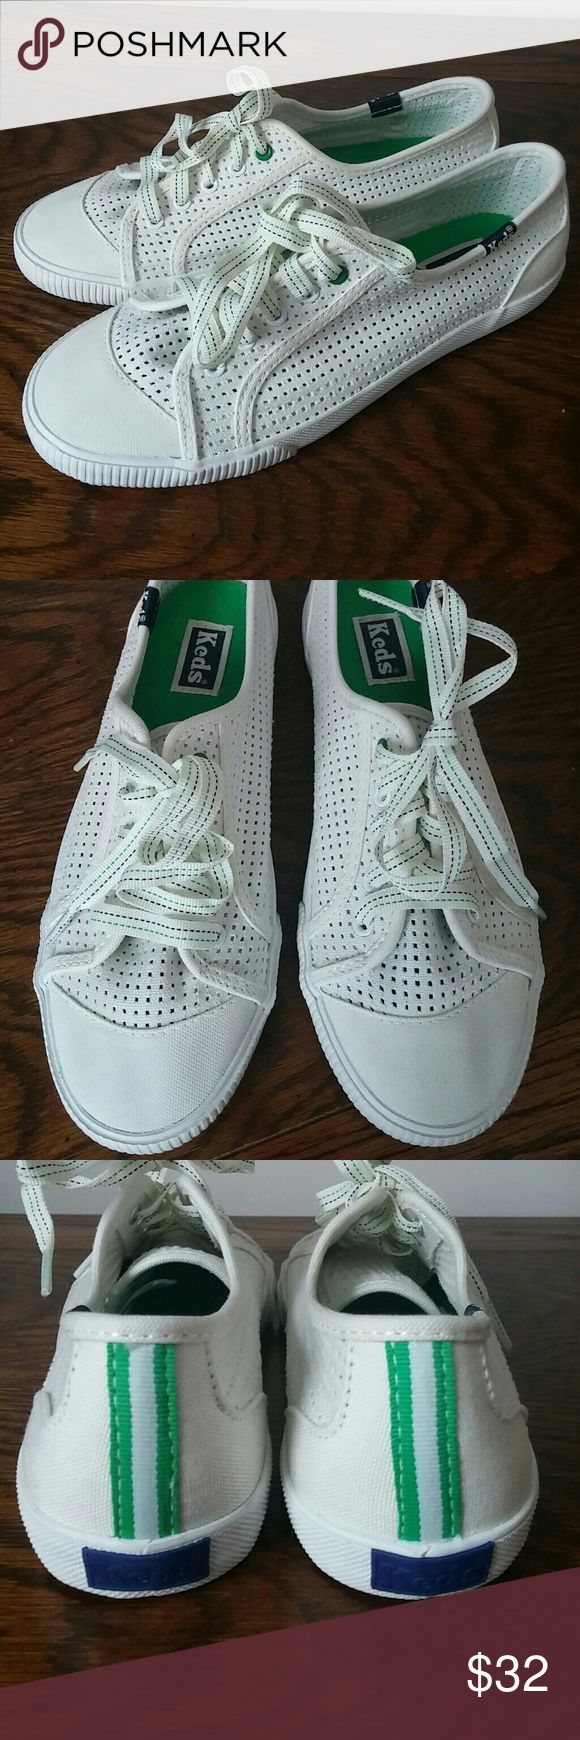 NWOT Keds tennis shoes So cute, new Keds tennis shoes. Fun Navy and green striped laces and a green stripe down the back. Perfect for vacation or this spring and summer. Keds Shoes